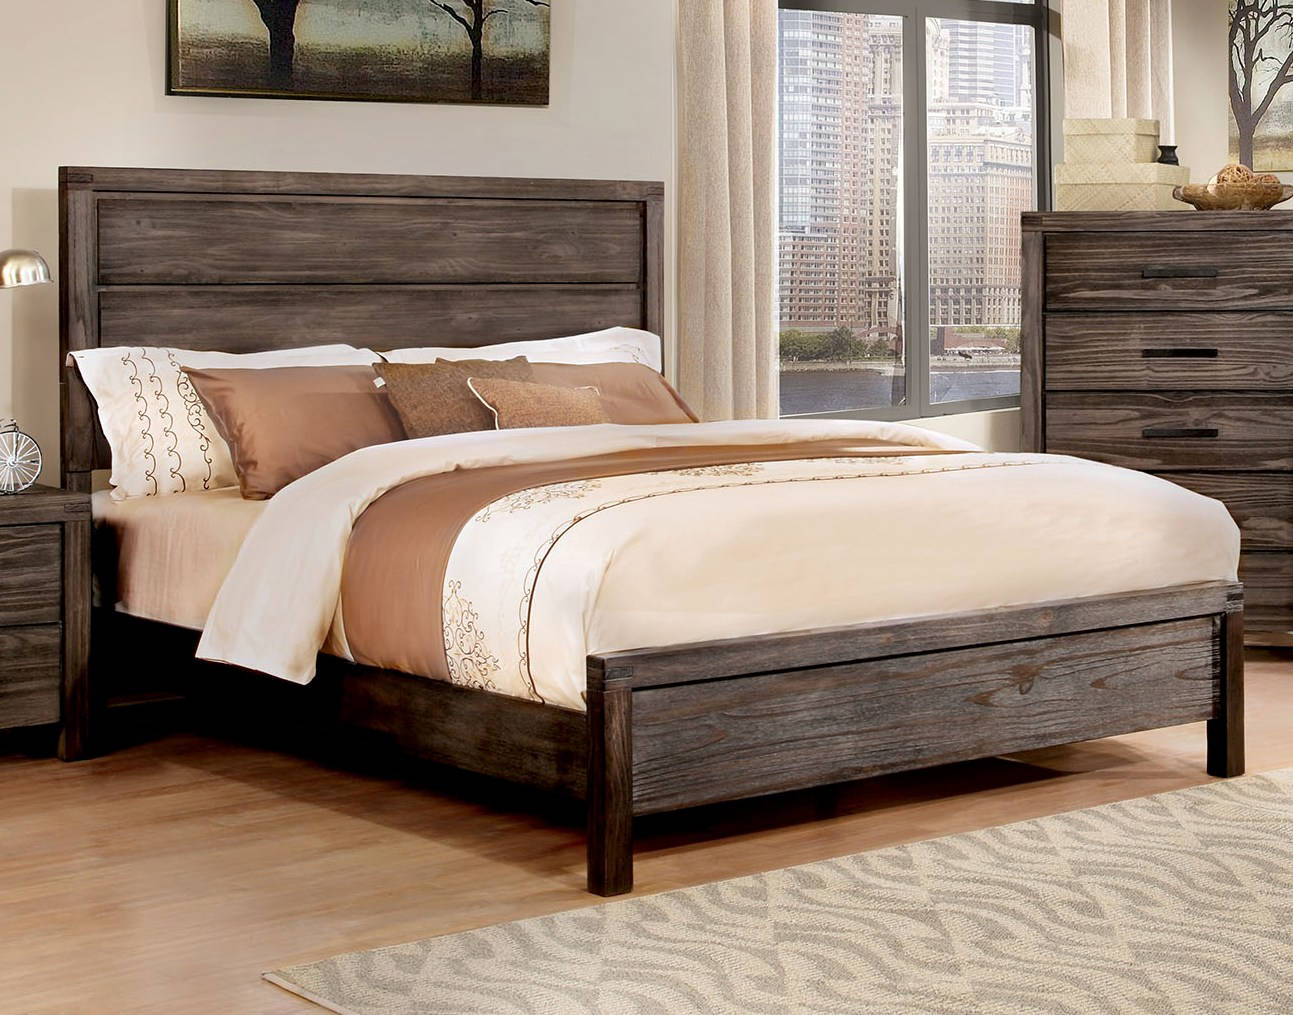 Furniture of america rexburg king bed the classy home for Furniture of america bed reviews